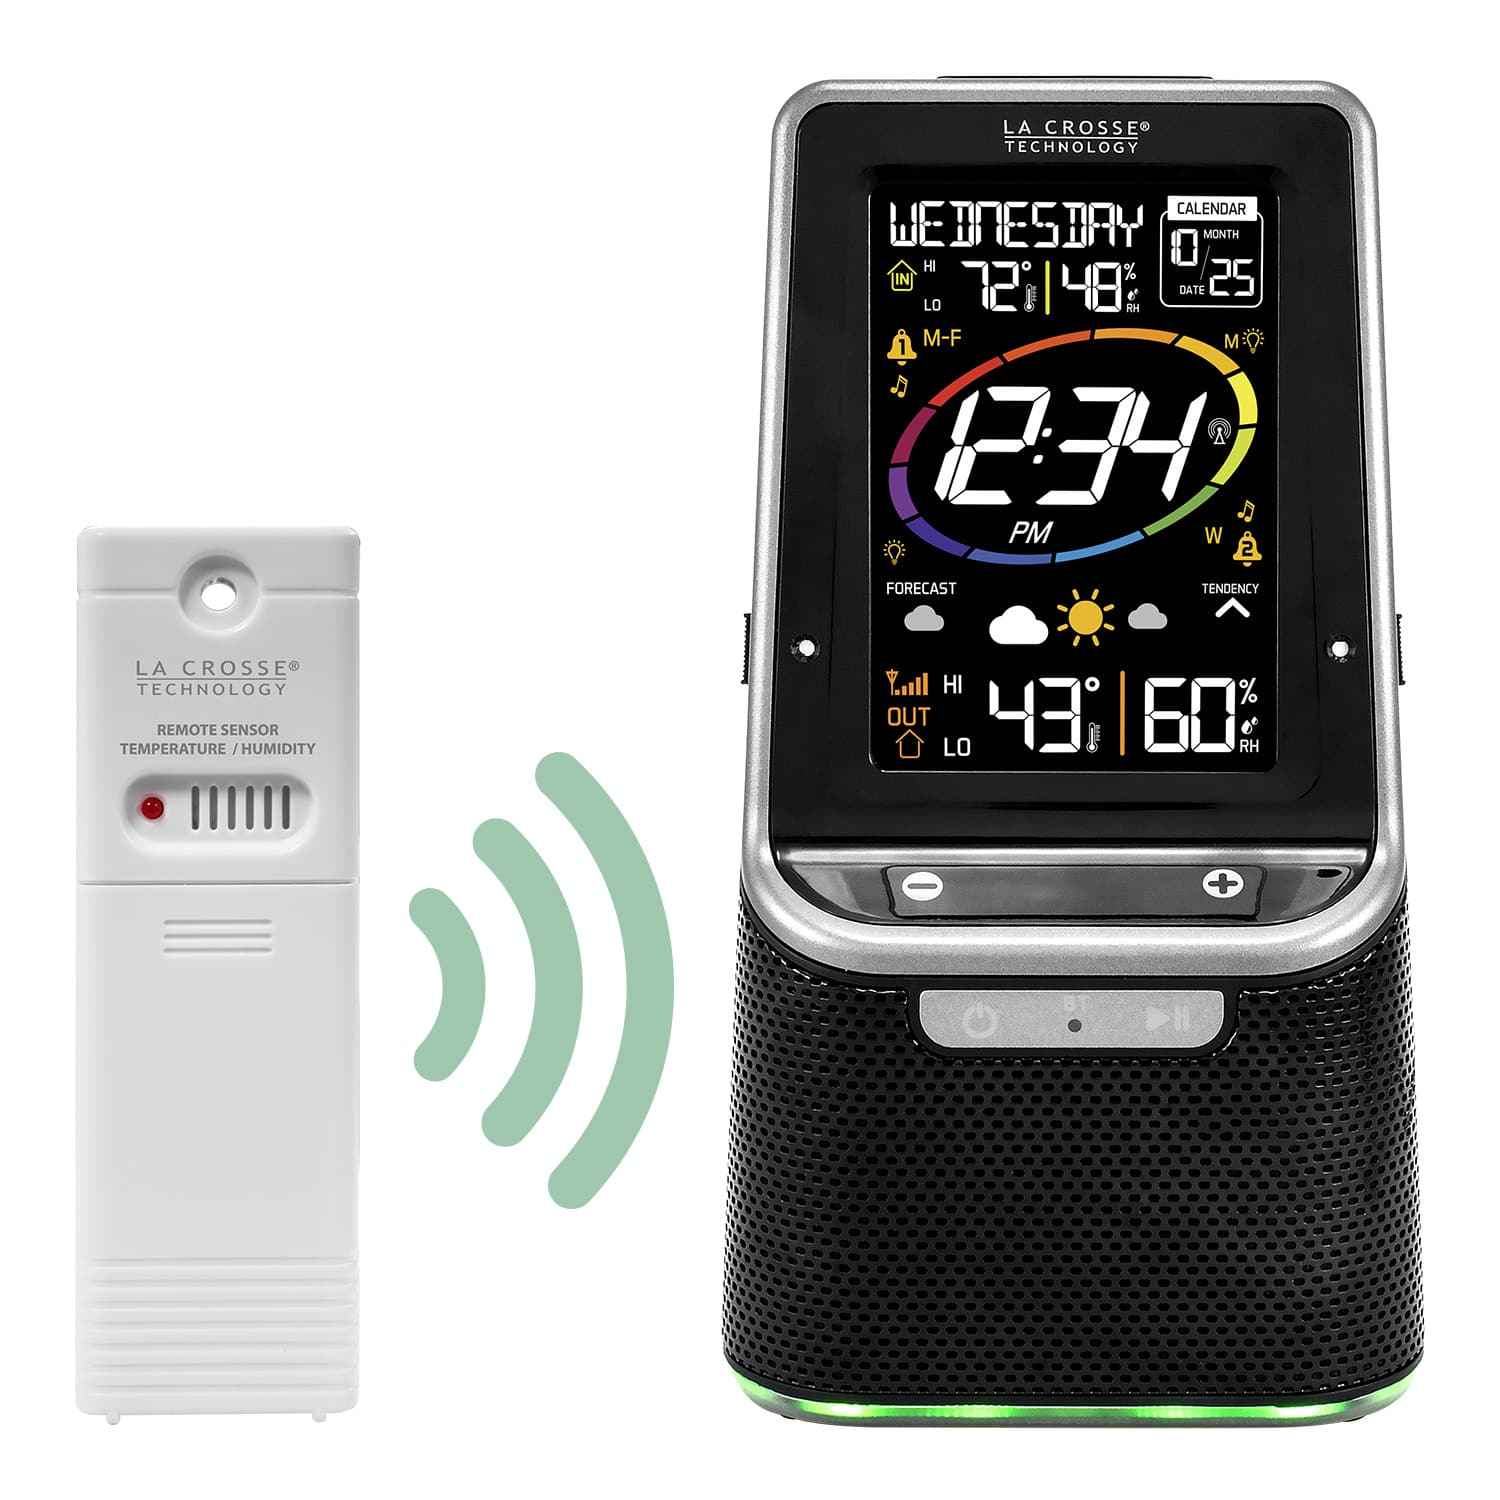 La Crosse Technology - S86842 - Wireless Weather Station with Bluetooth Speaker - $29.95 + Free Shipping